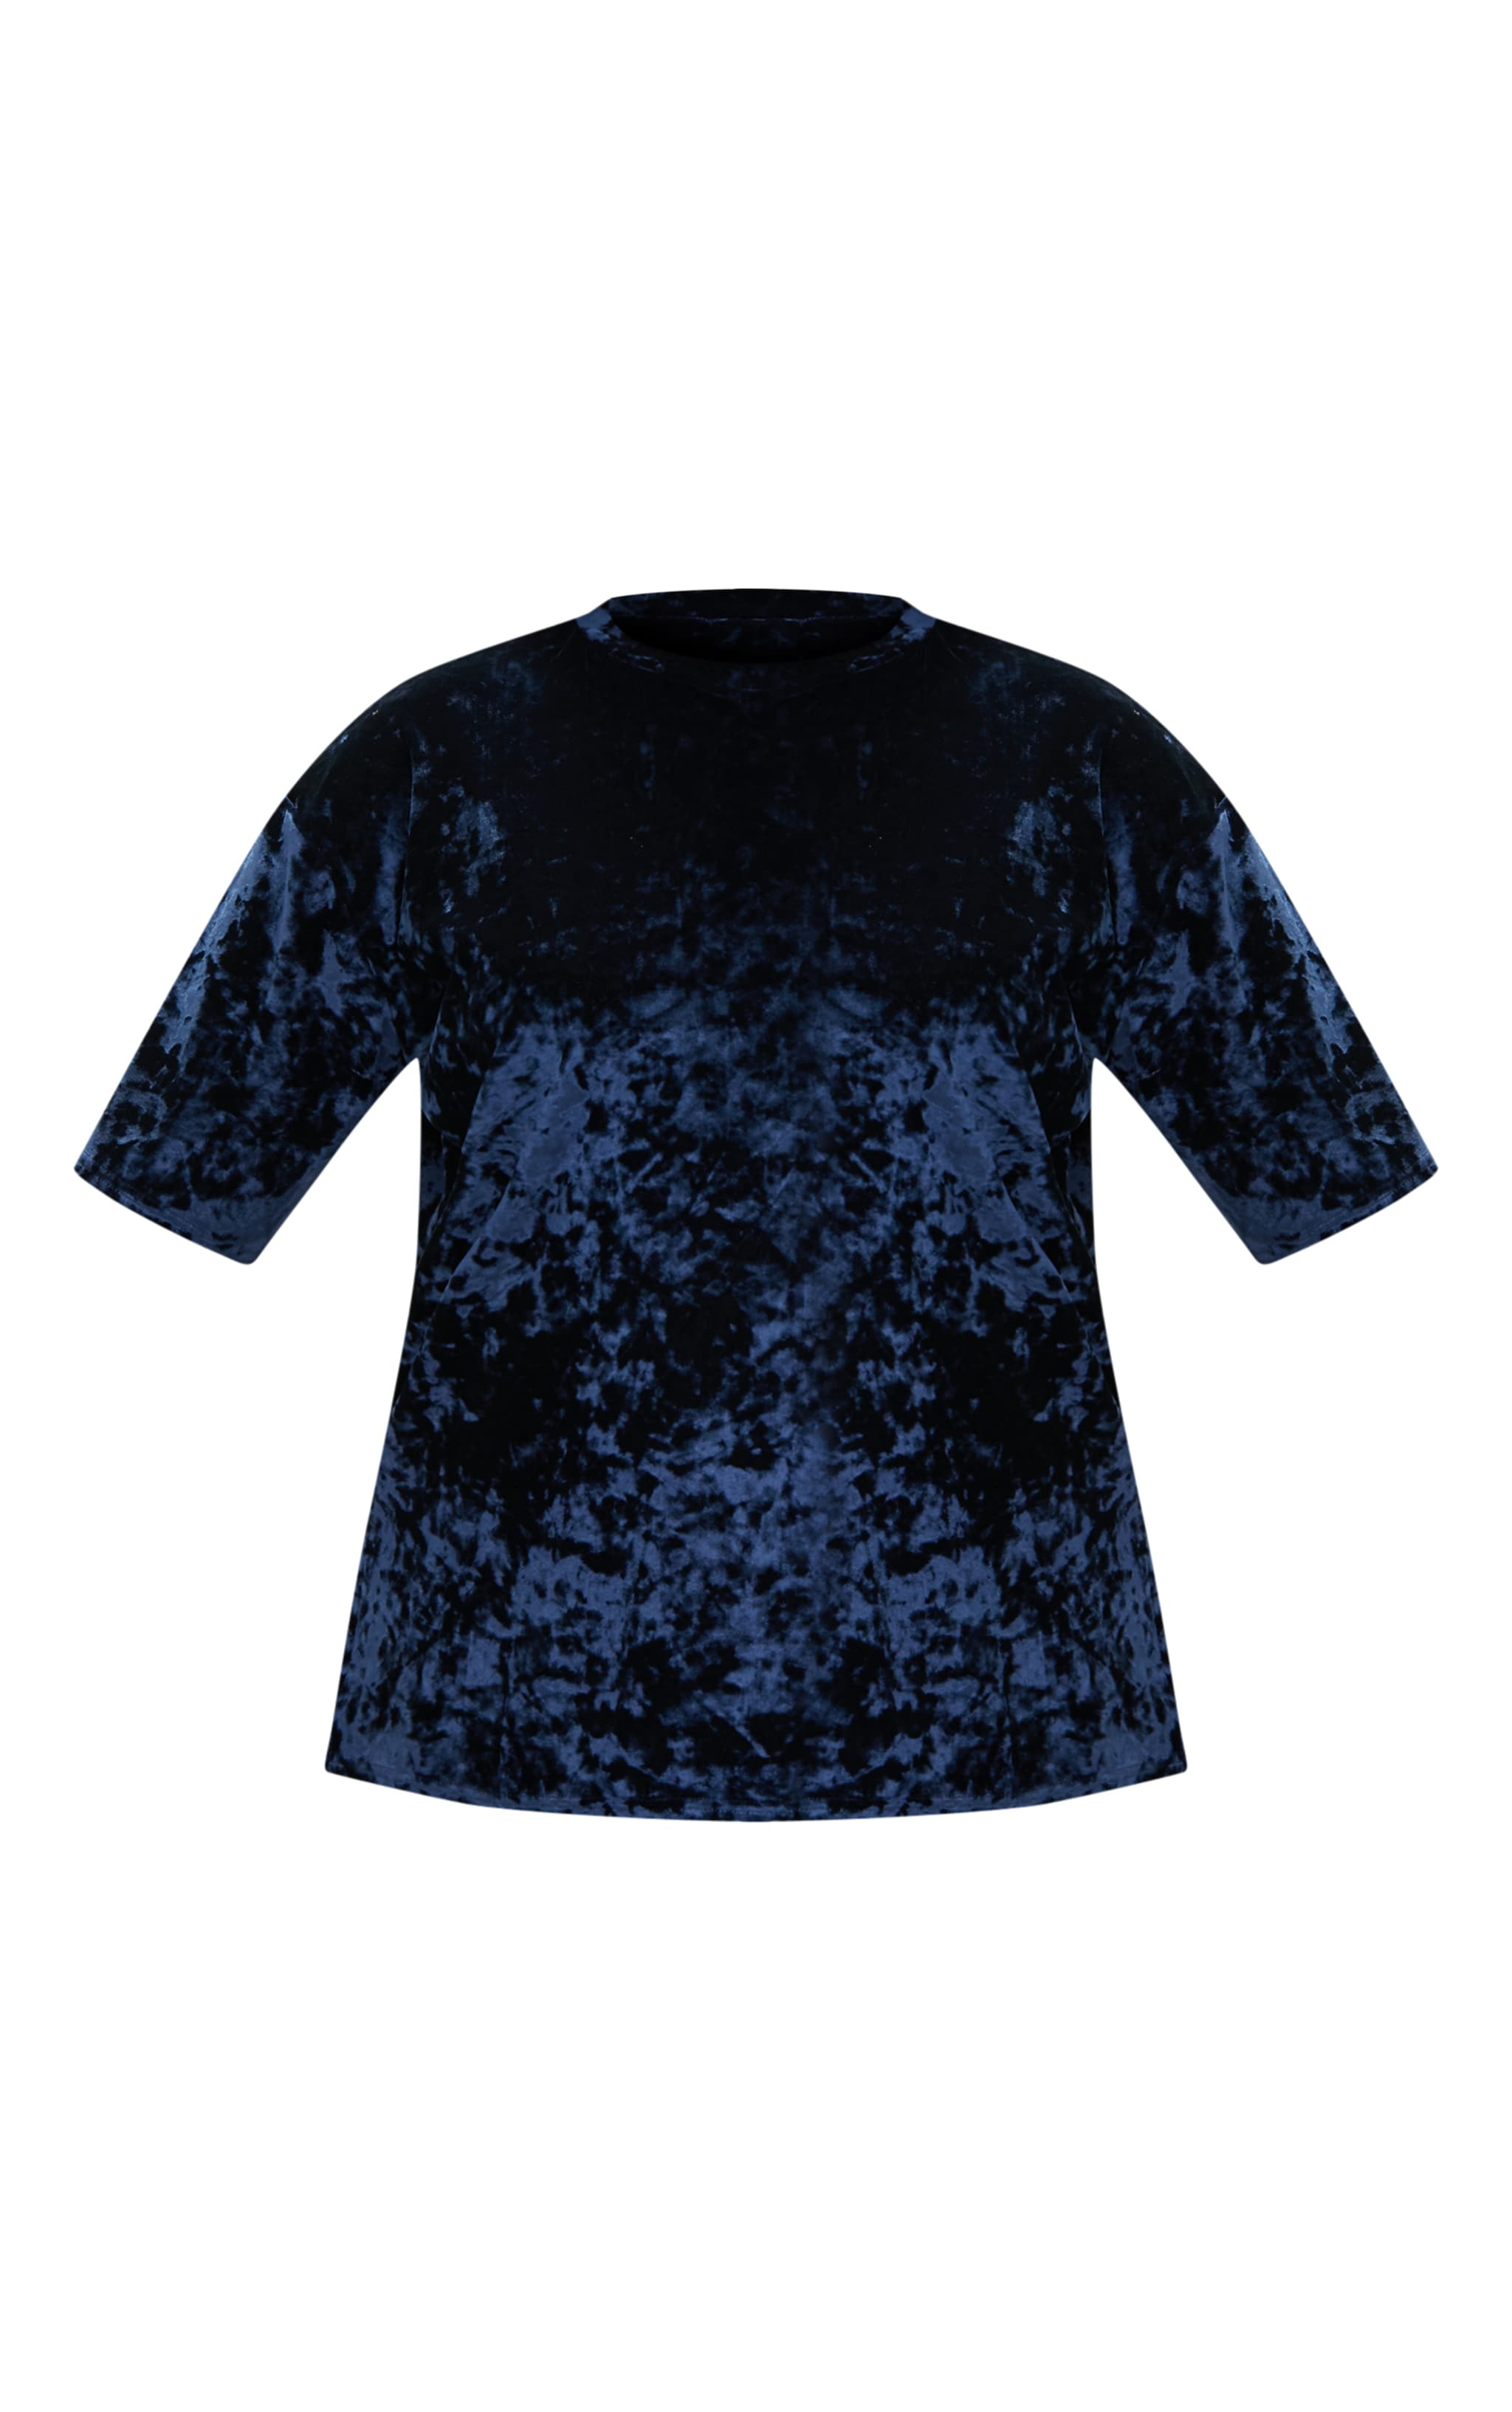 Plus Blue Velvet T-Shirt 3